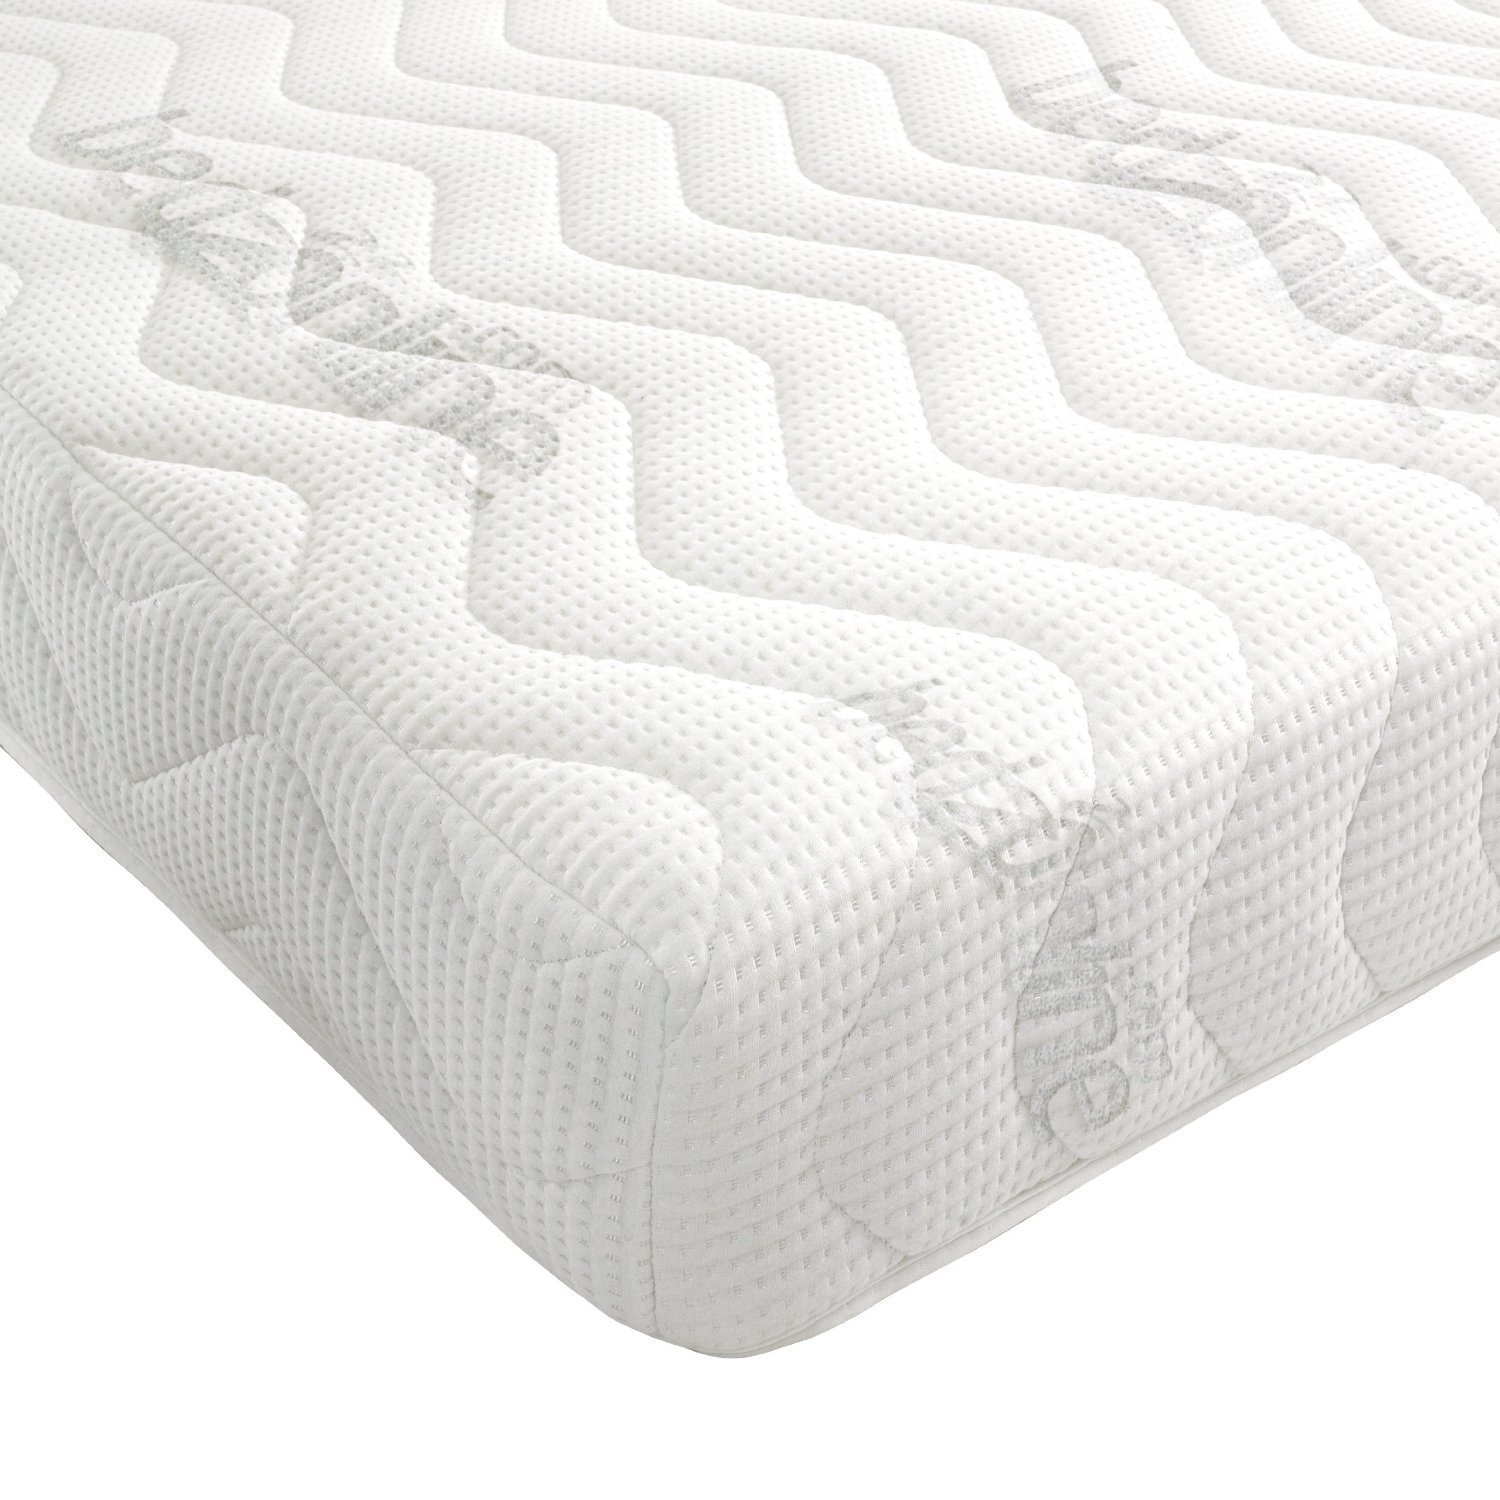 sultan nongzi foam materassi of full and size r memory pictures fabulous mattress co l beautiful fidjetun ikea matress